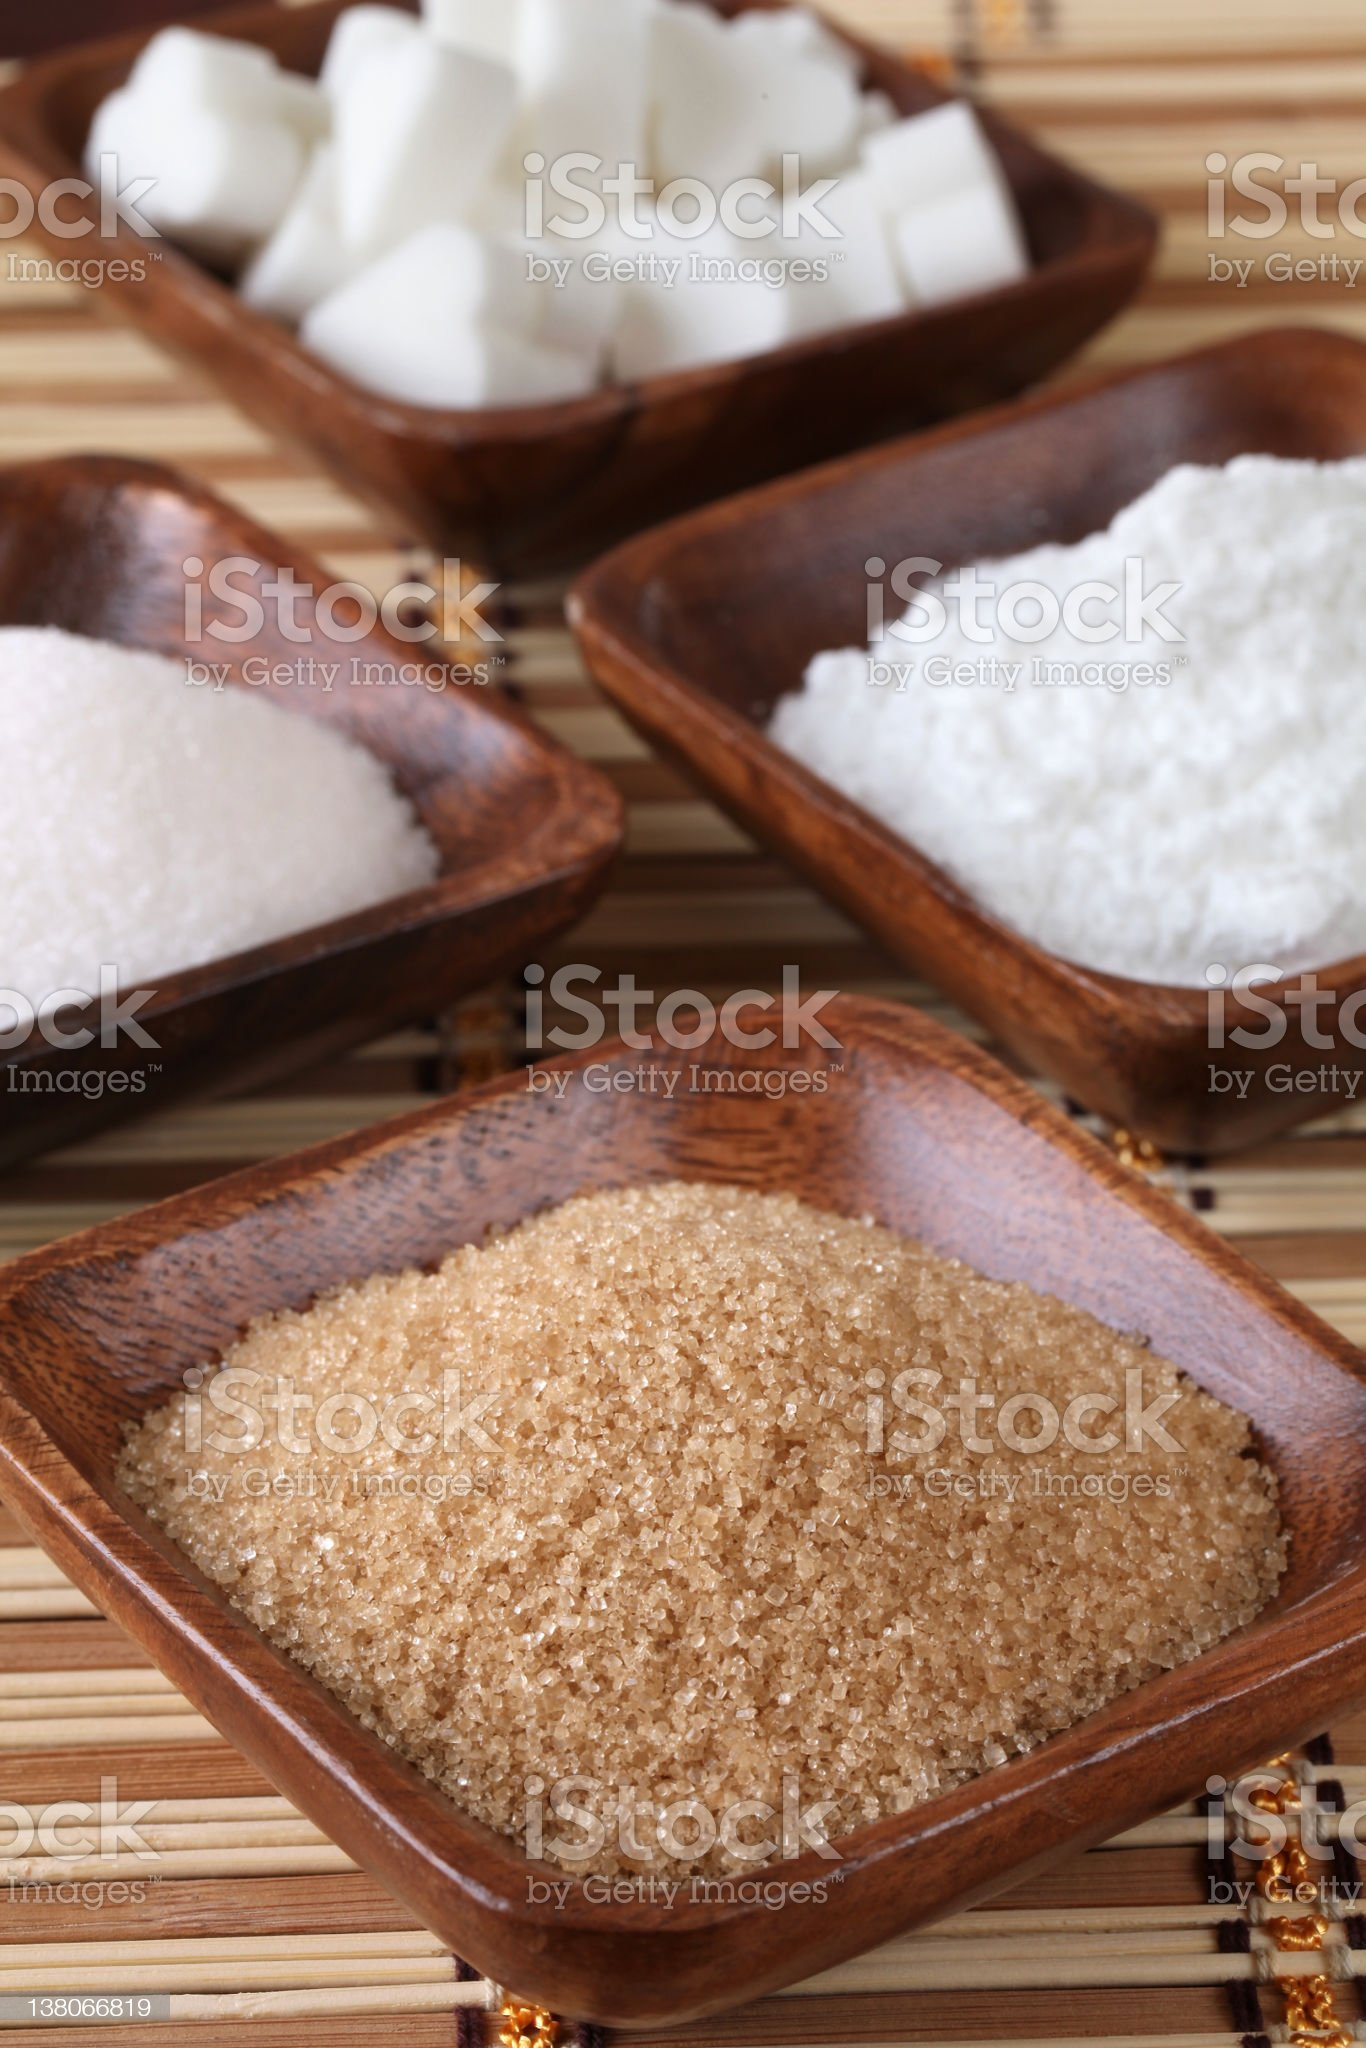 Sugar in wooden bowls royalty-free stock photo